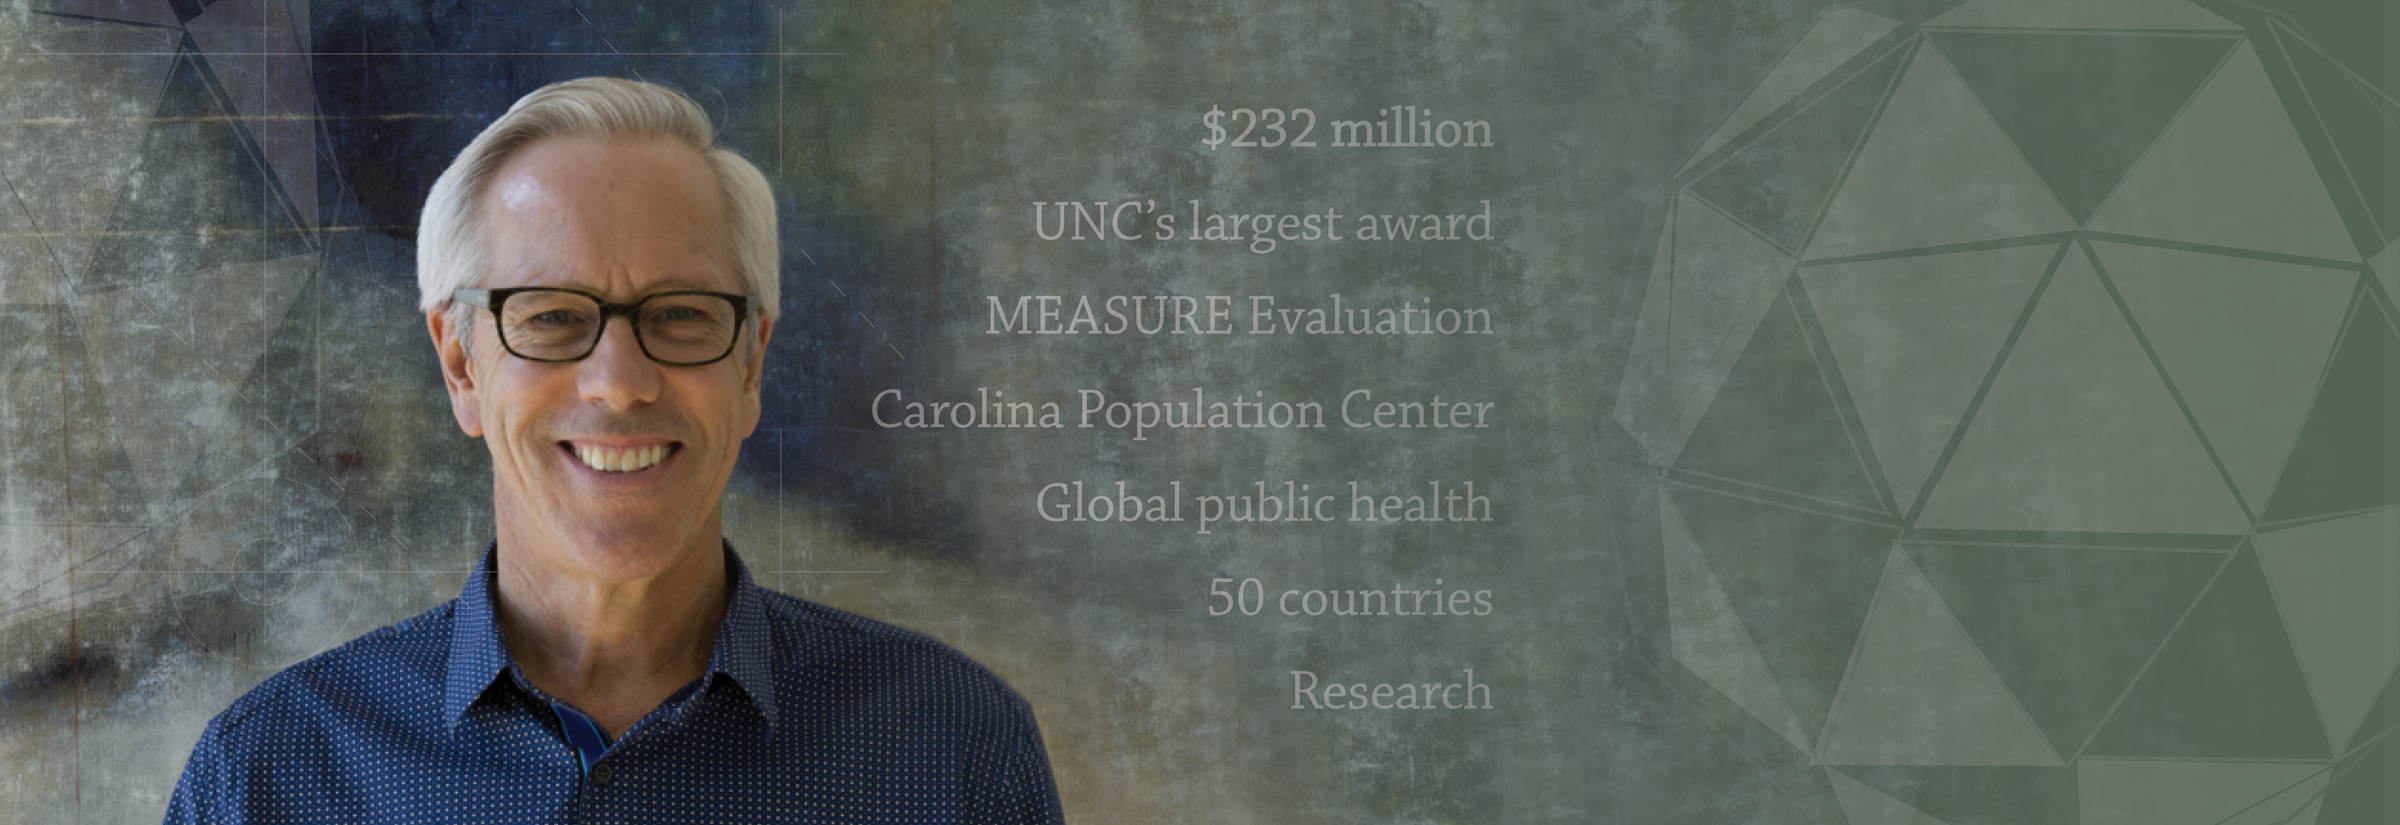 $232 million. UNC's largest award. MEASURE Evaluation. Carolina Population Center. 50 countries. Research.